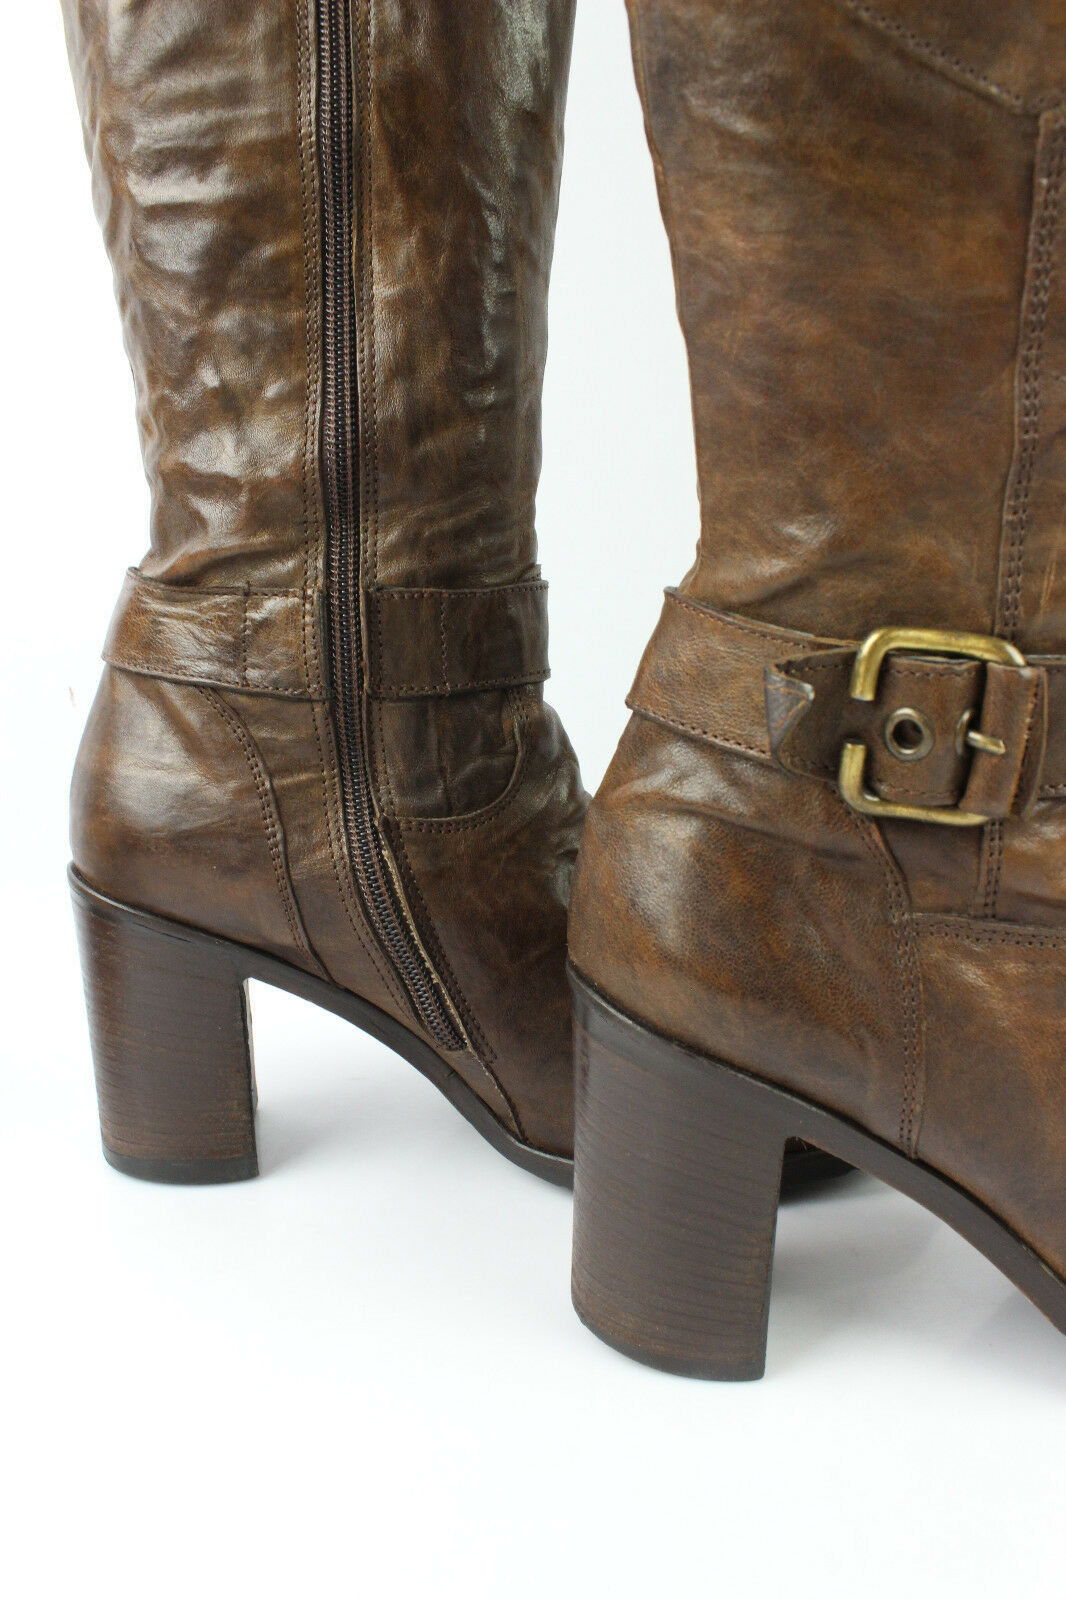 Boots JANET JANET JANET and JANET All Brown Leather T 38 VERY GOOD CONDITION 5b587b